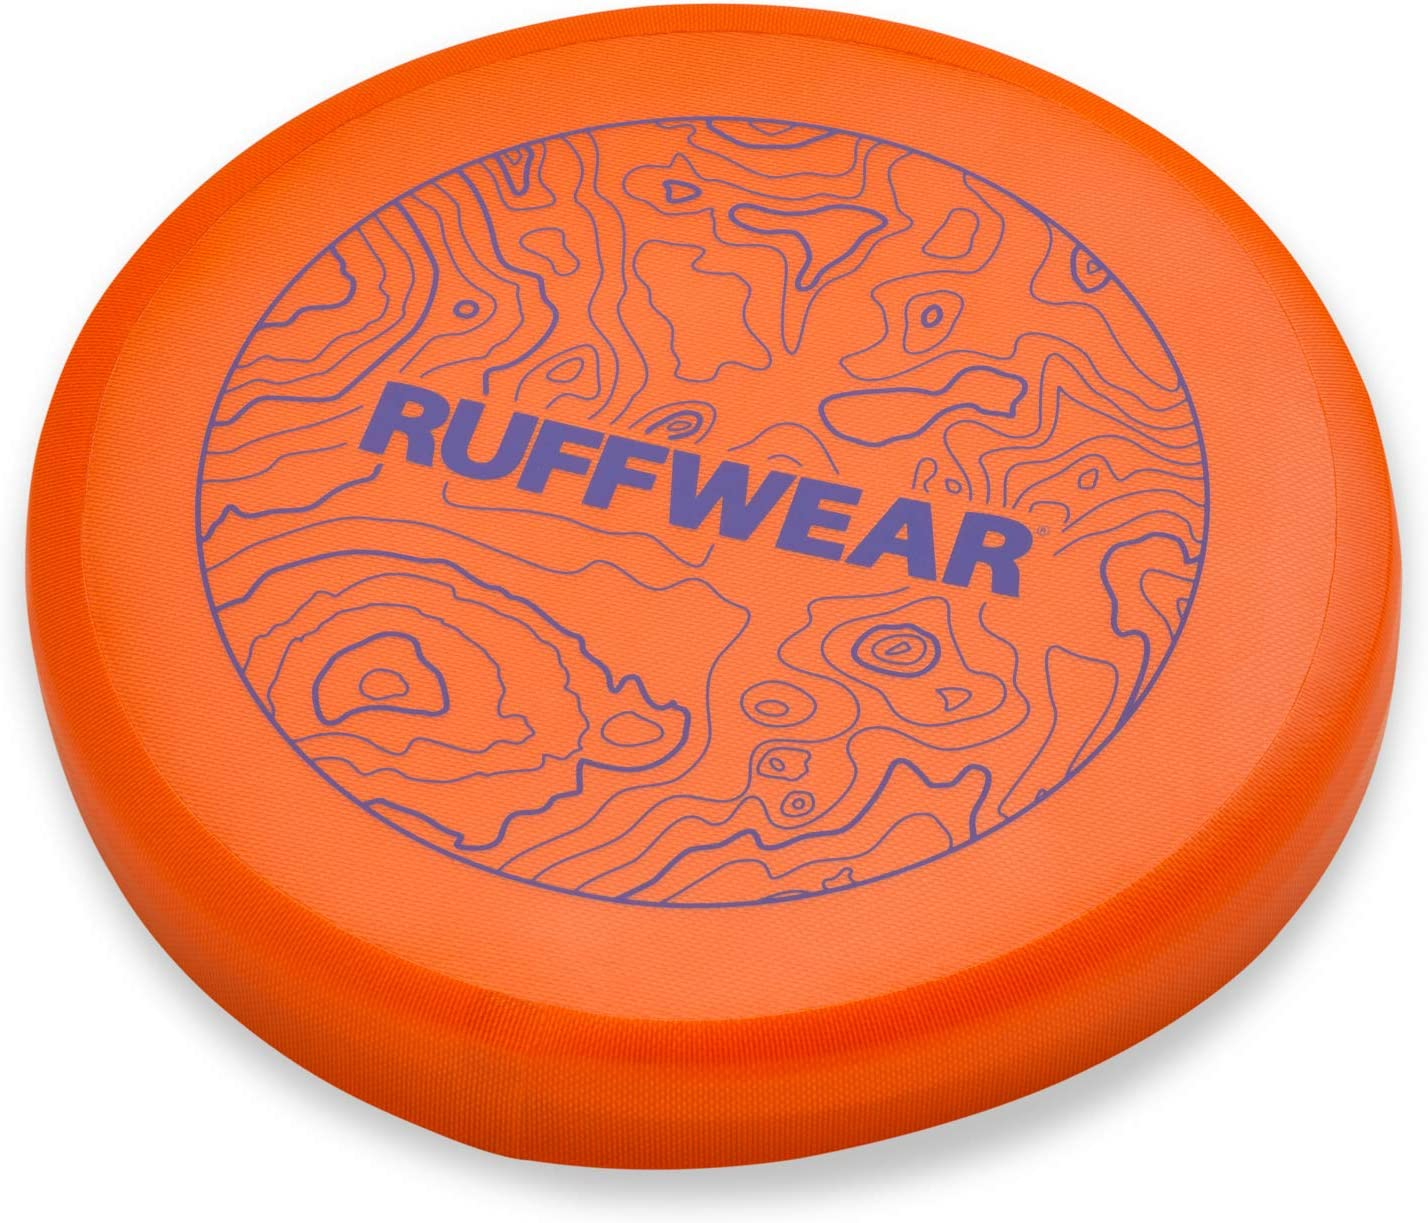 RUFFWEAR - Camp Flyer Dog Toy, Lightweight and Flexible Disc for Fetch